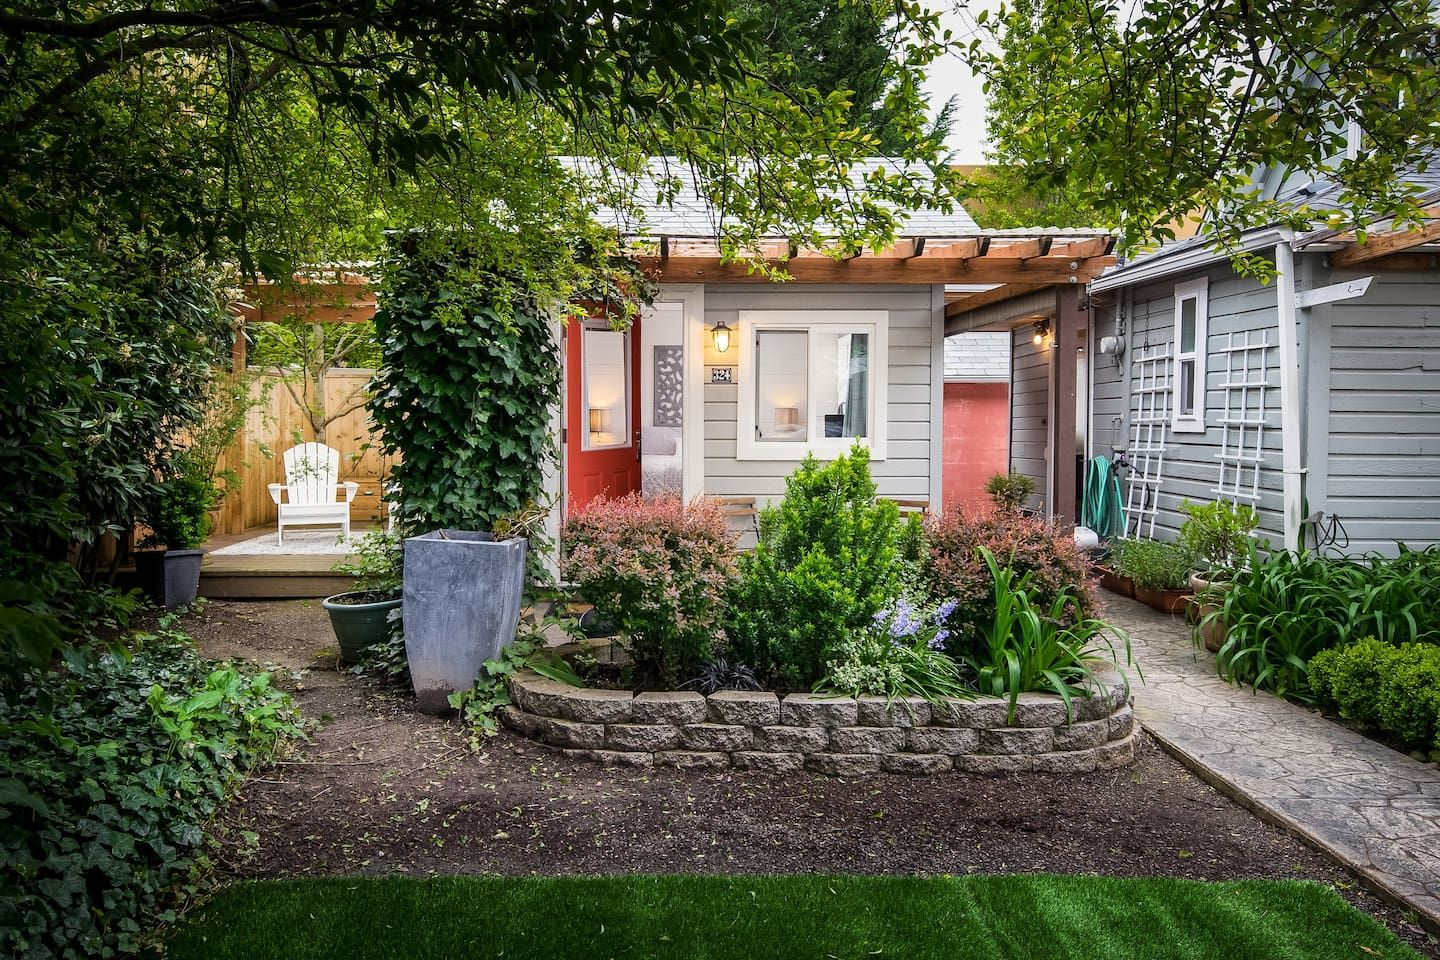 Tiny house airbnb oregon new house designs for Small houses oregon